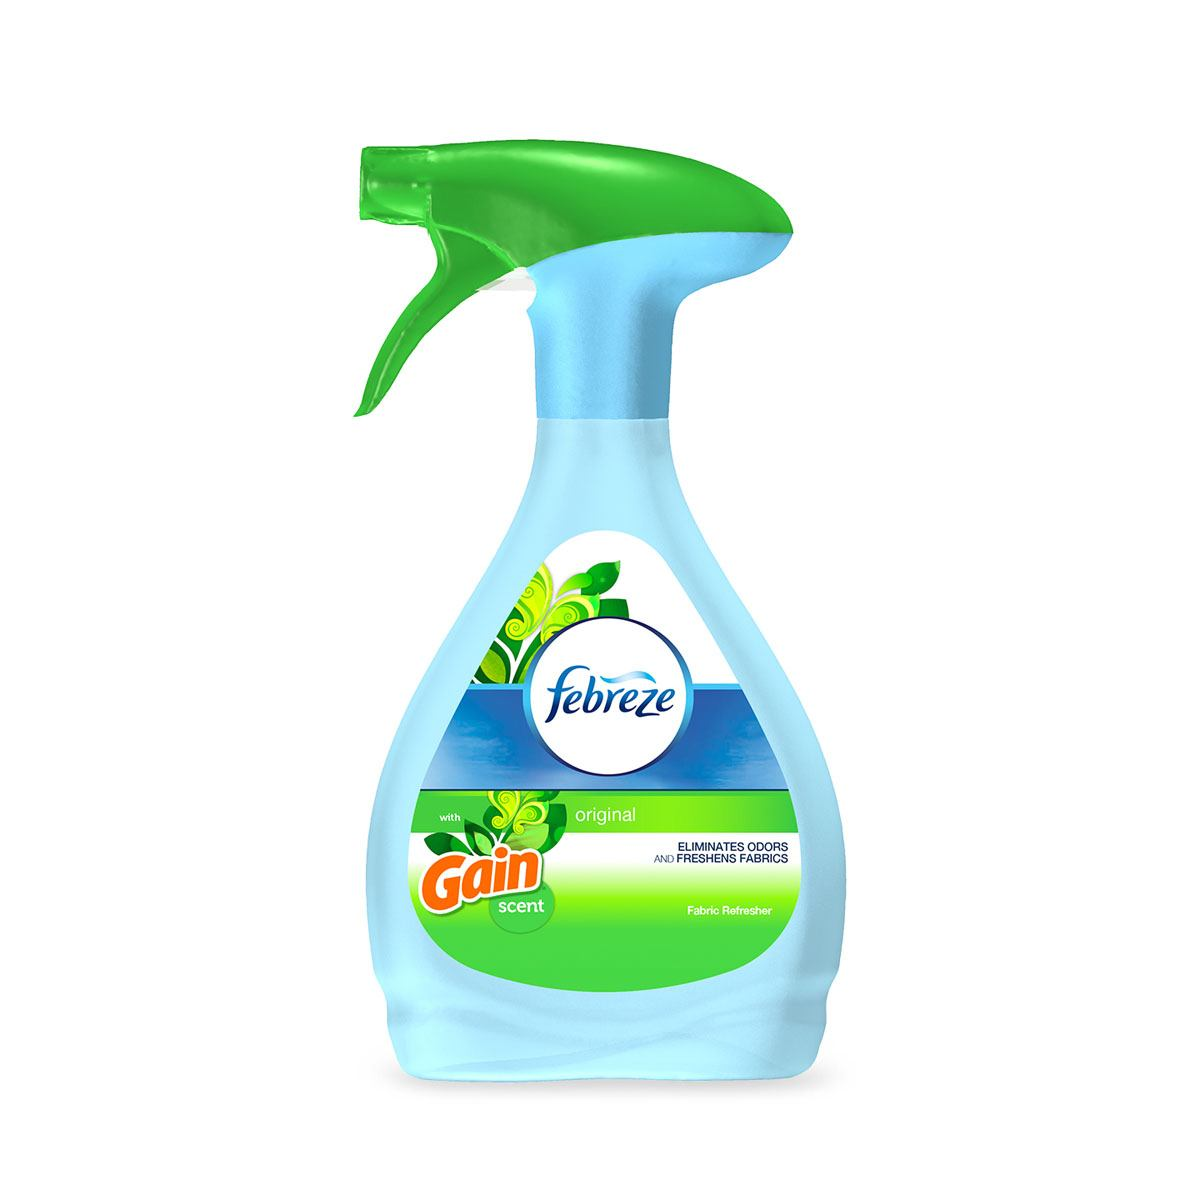 Original Febreze with Gain Scent Fabric Refresher